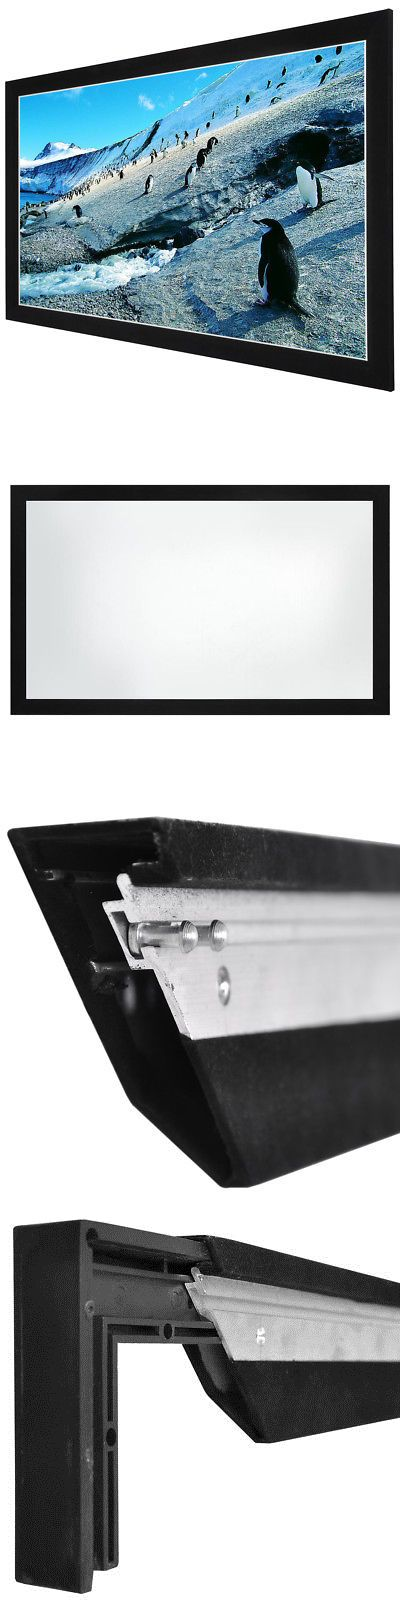 Projection Screens and Material: 92 Deluxe 16:9 Fixed Frame Projector Screen 80 X45 Pvc Projection Home Theater -> BUY IT NOW ONLY: $98.9 on eBay!